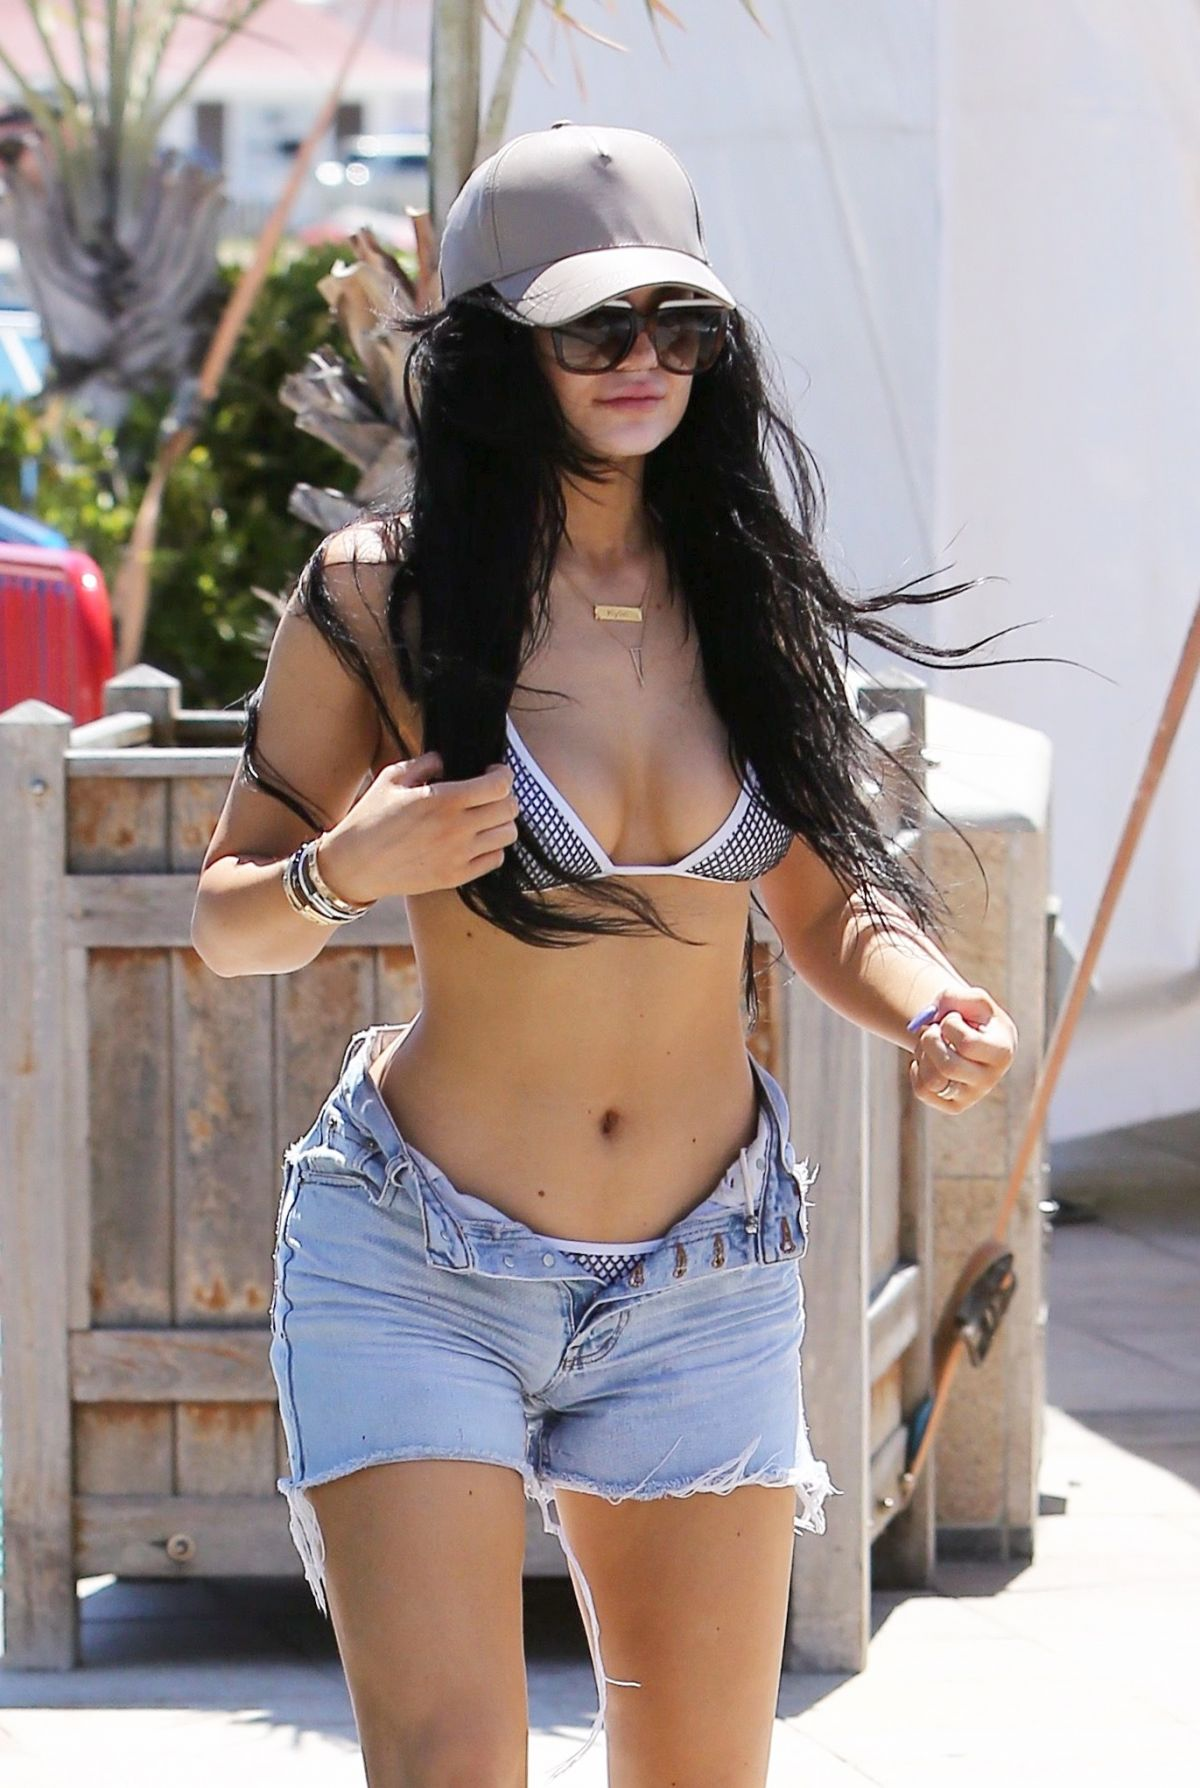 KYLIE JENNER in Bikini Top Arrives at a Boat